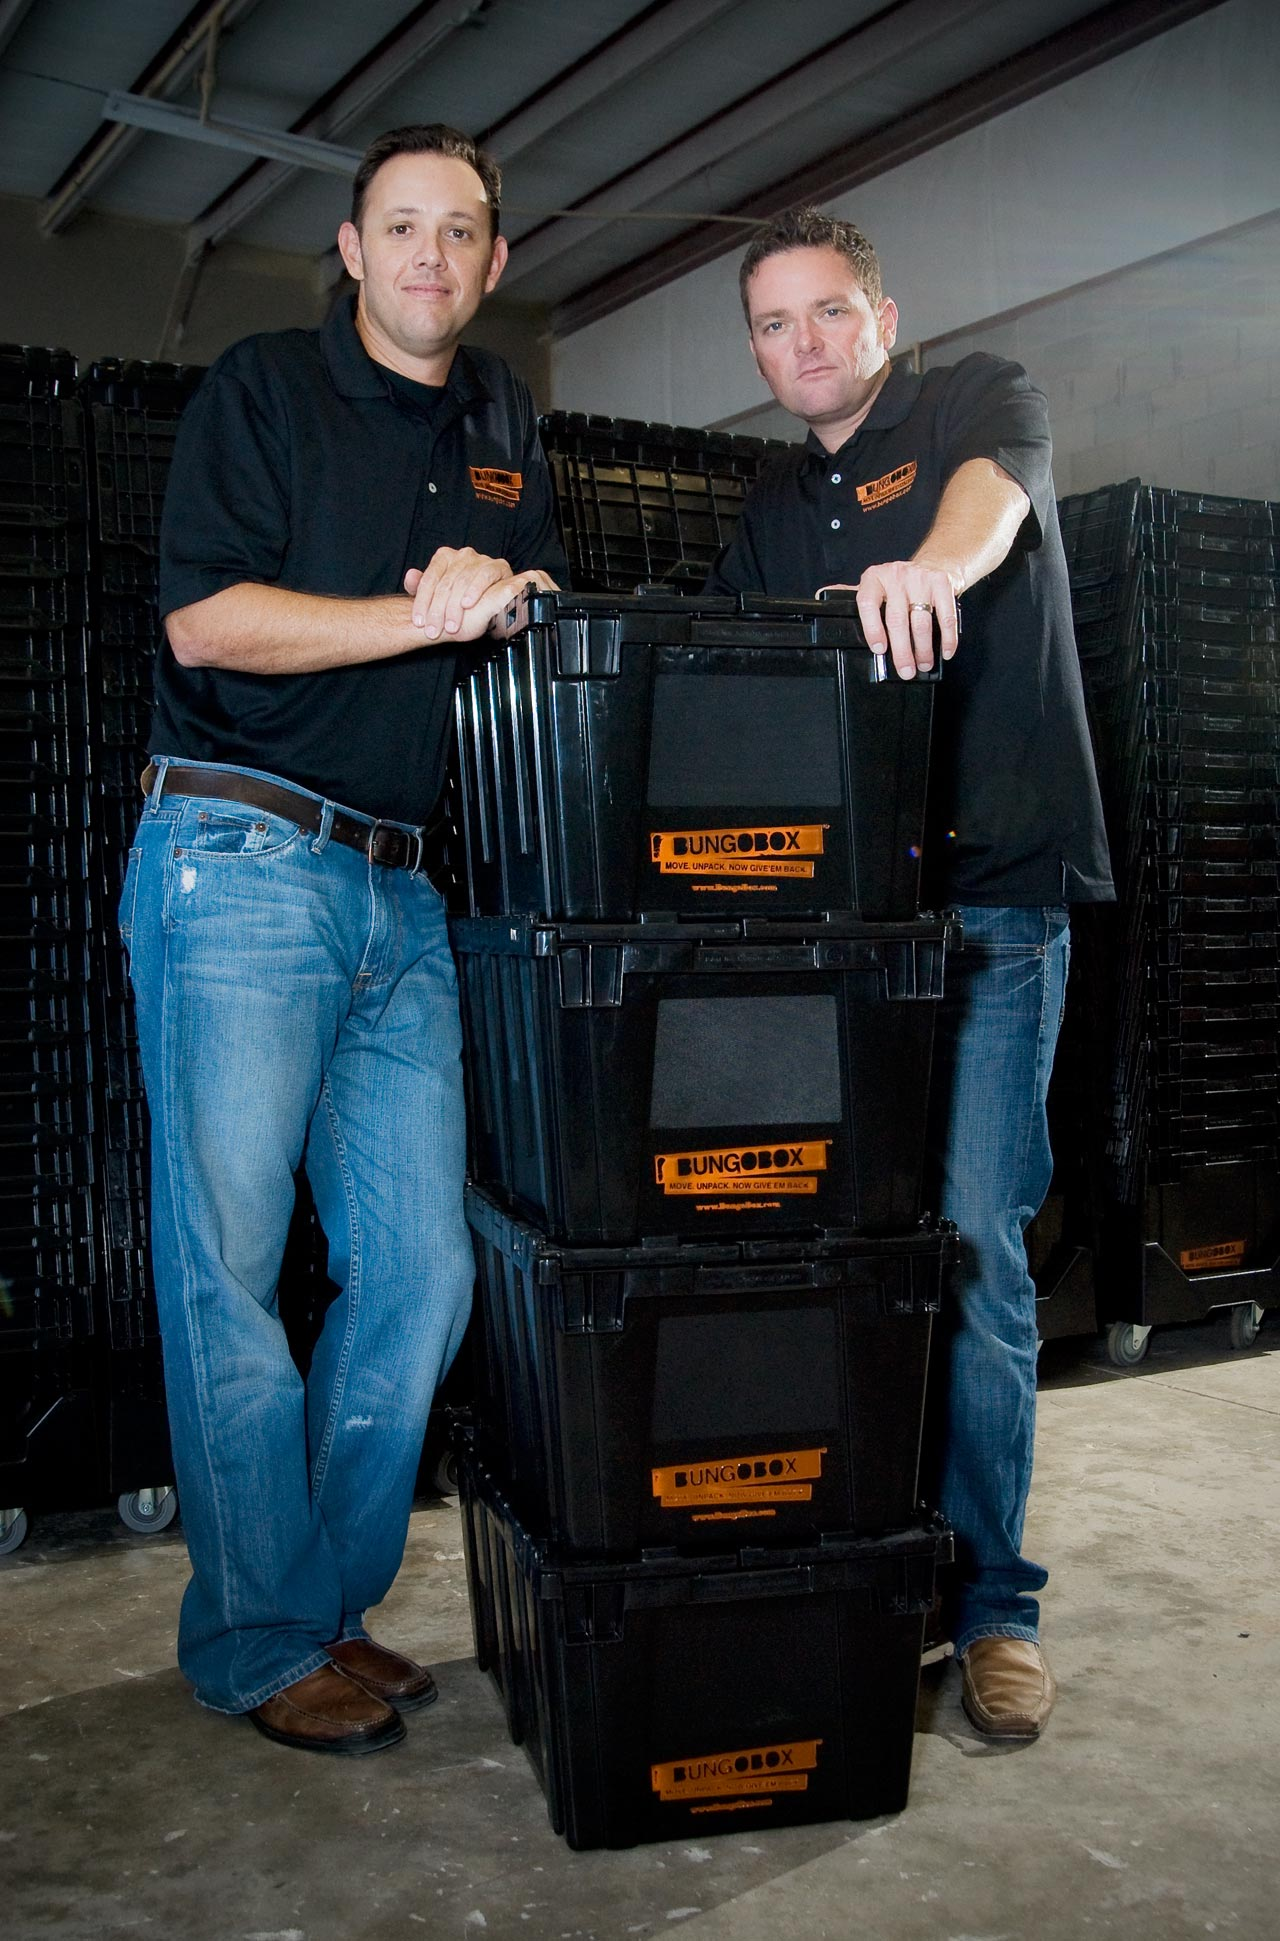 Bob and Tom Leaning On Stack Of BungoBox Boxes